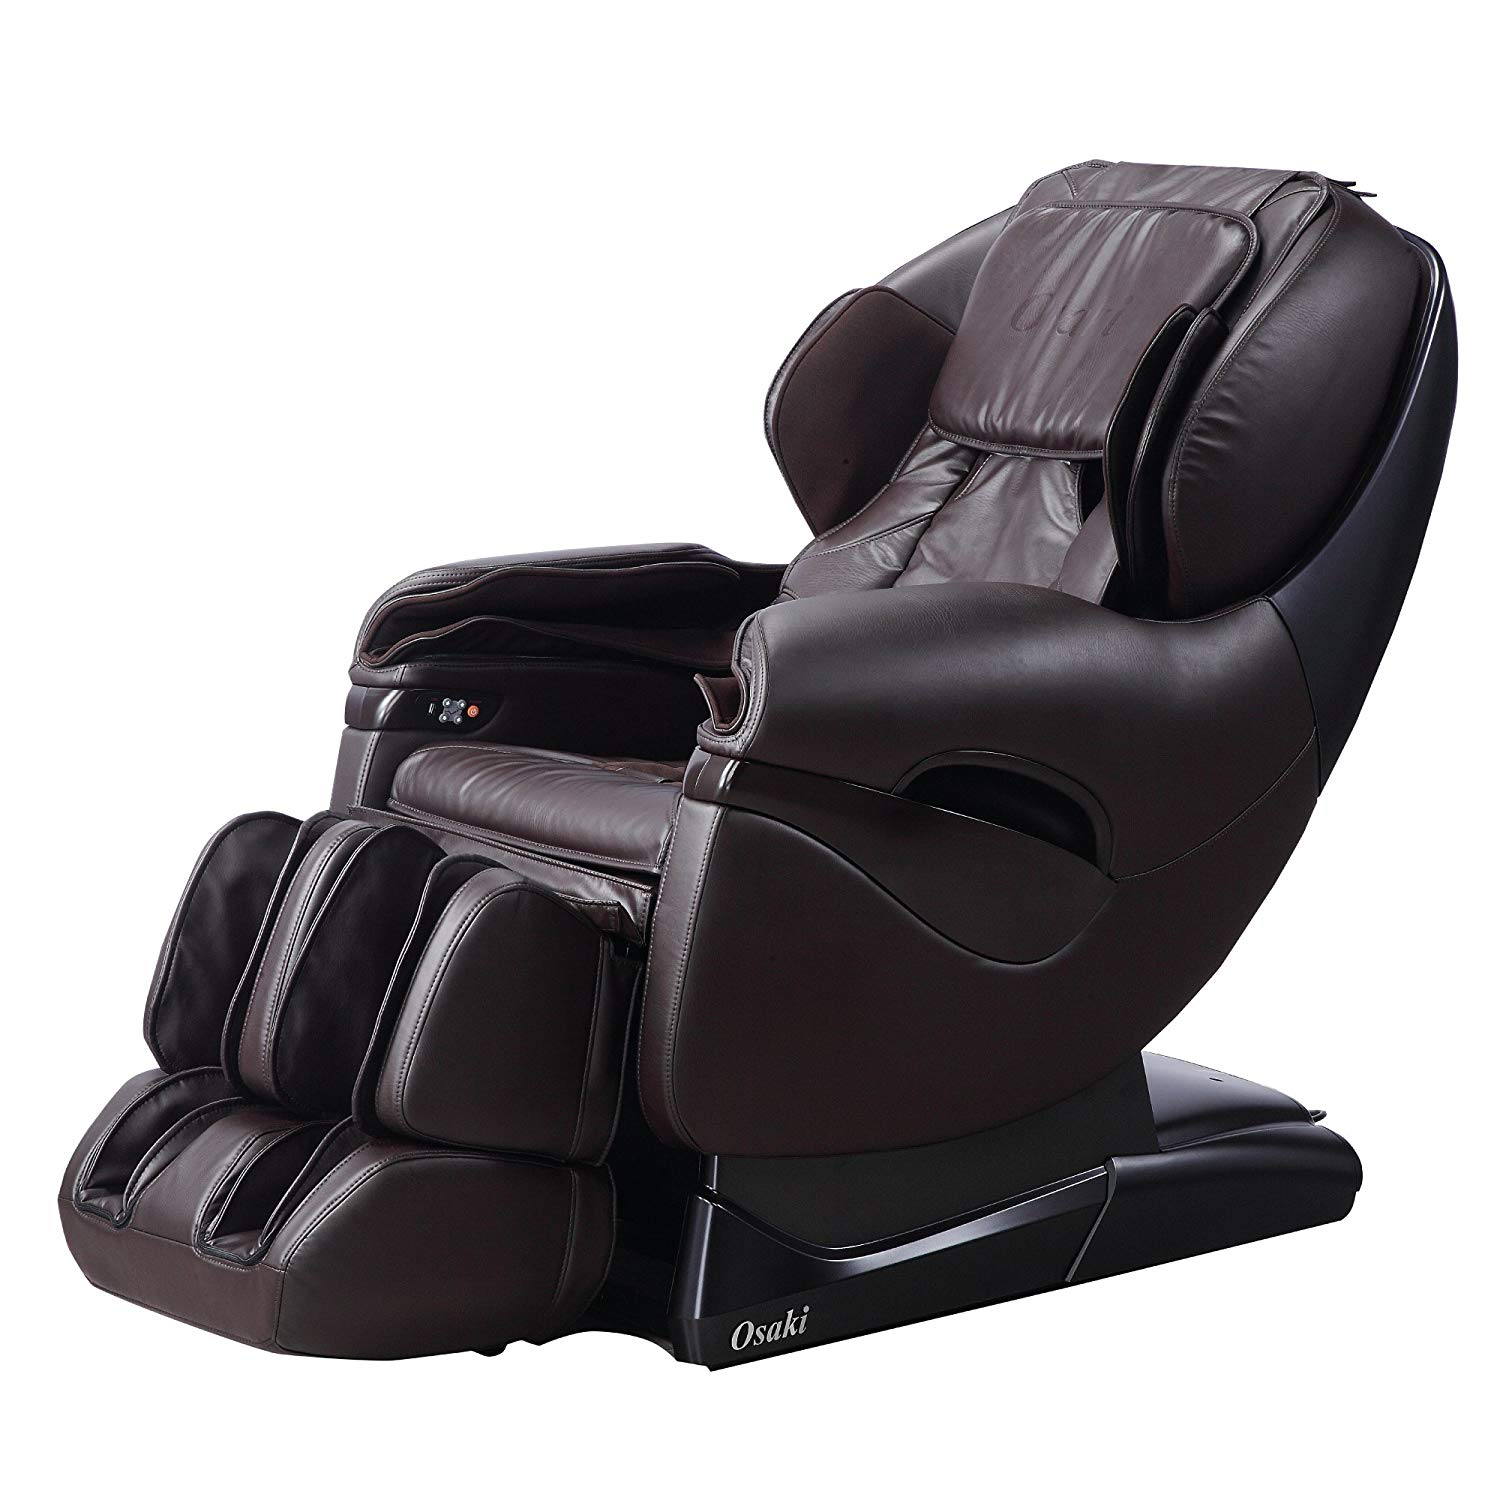 Osaki TP 8500 Zero Gravity Massage Chair